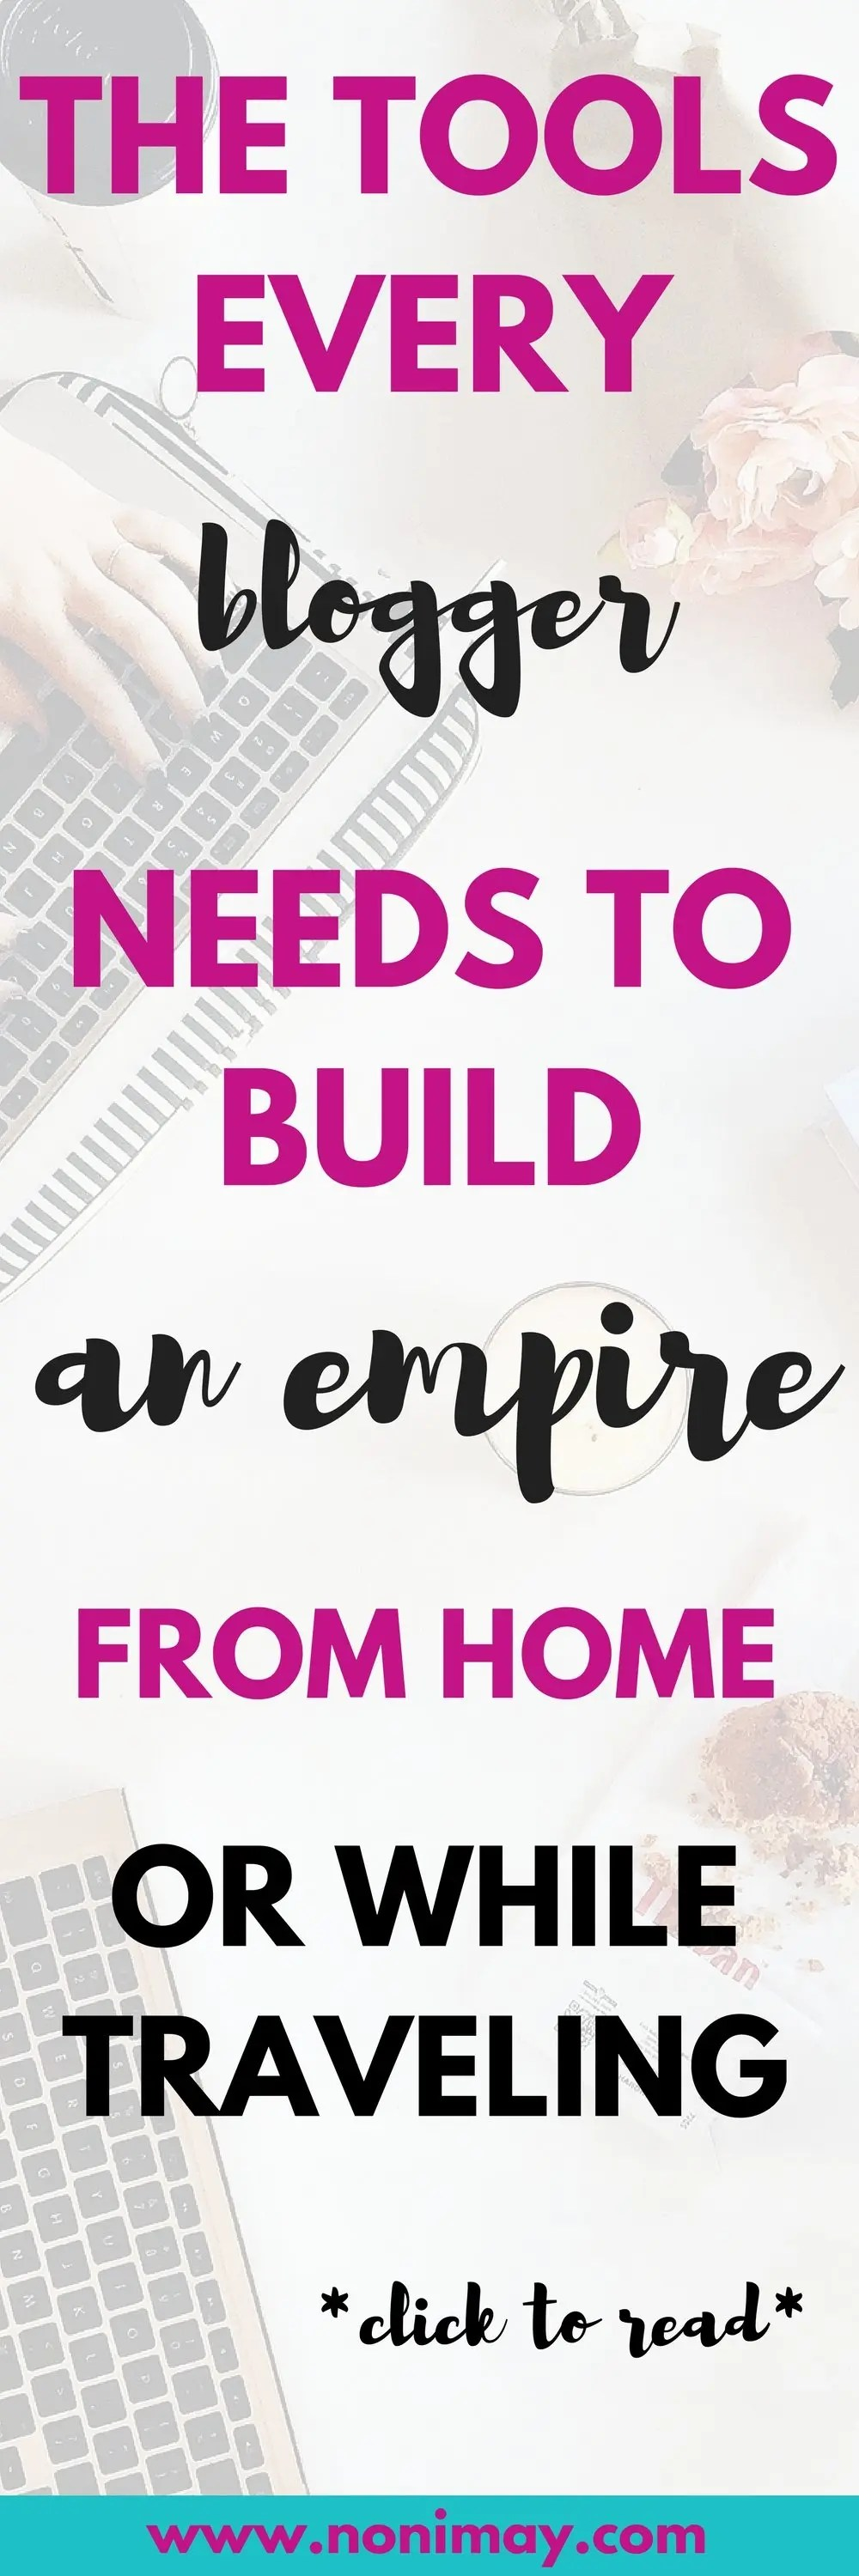 The tools every blogger needs to build an empire from home or while traveling